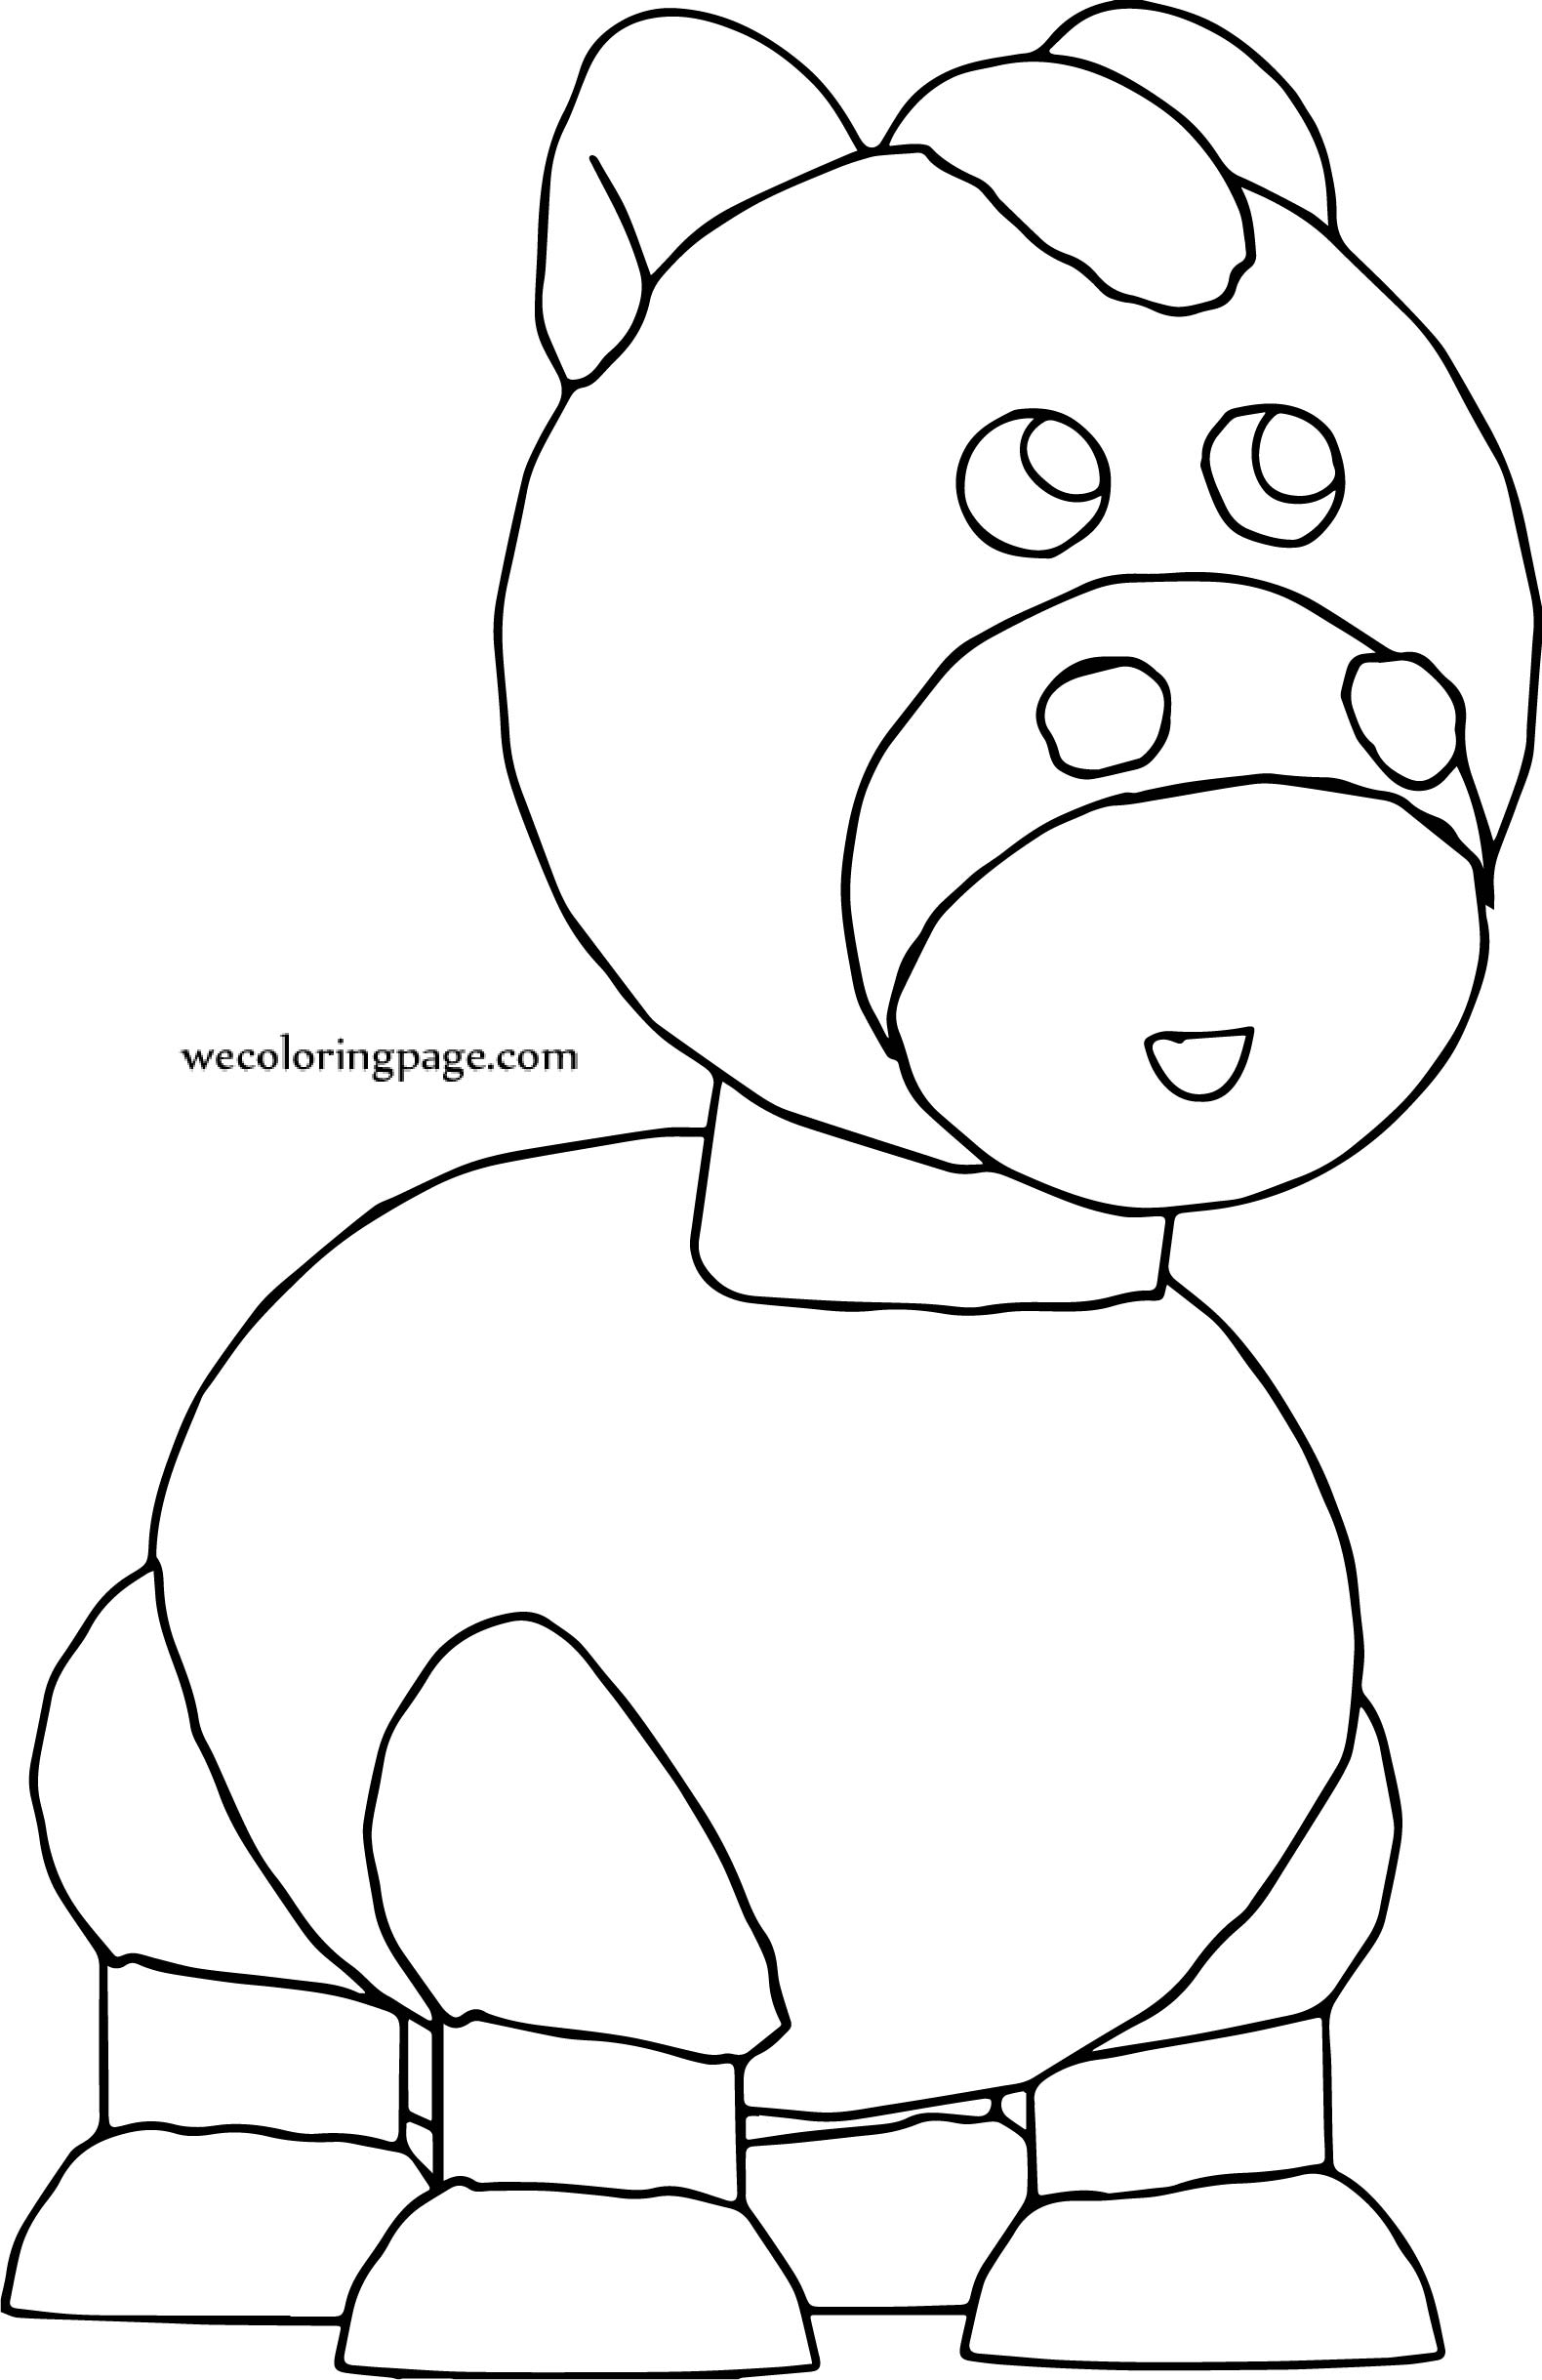 One Horse Cartoon Coloring Page